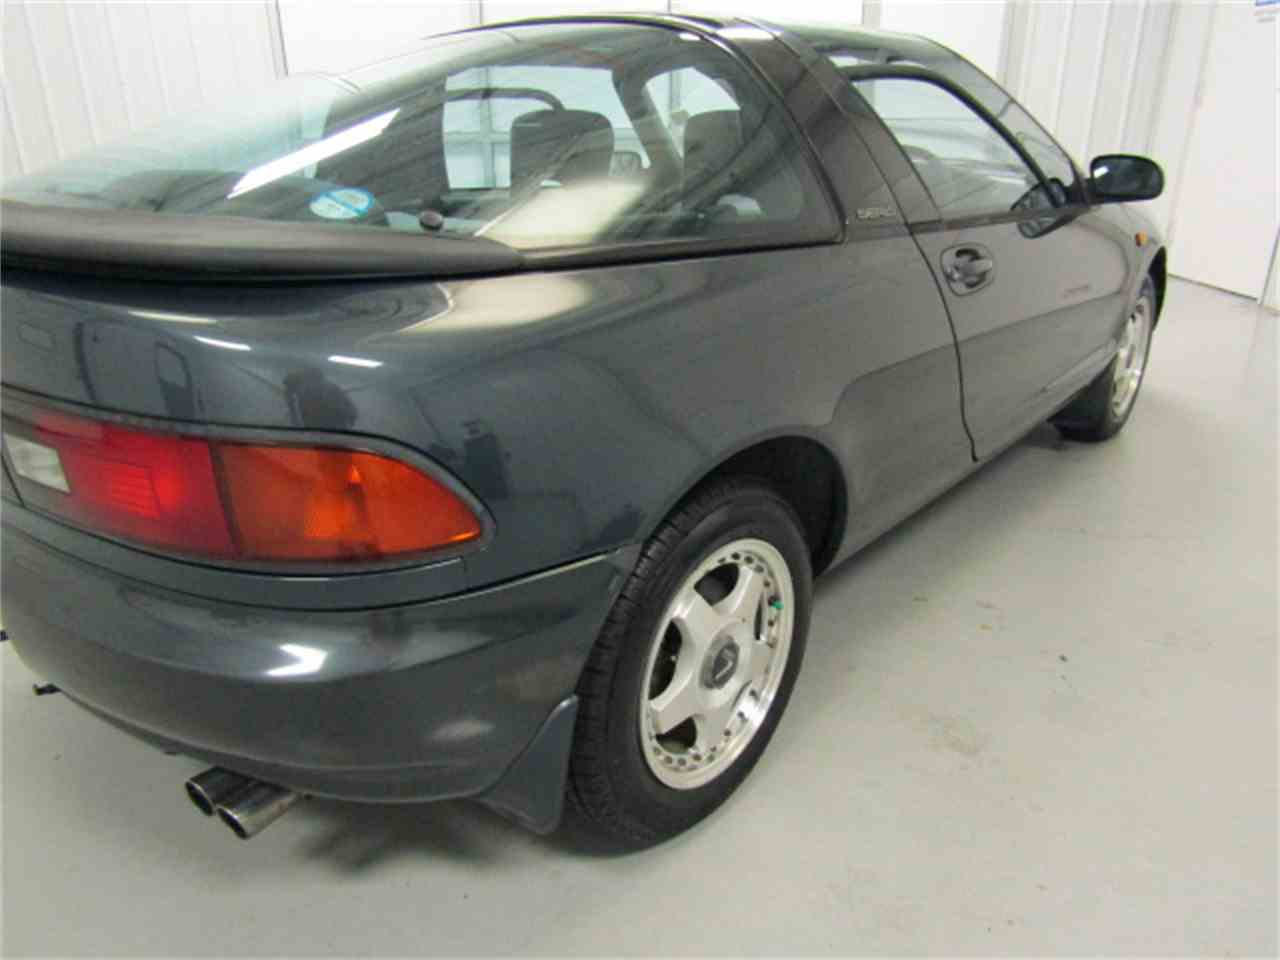 Large Picture of '90 Toyota Sera - $8,990.00 Offered by Duncan Imports & Classic Cars - JLBZ